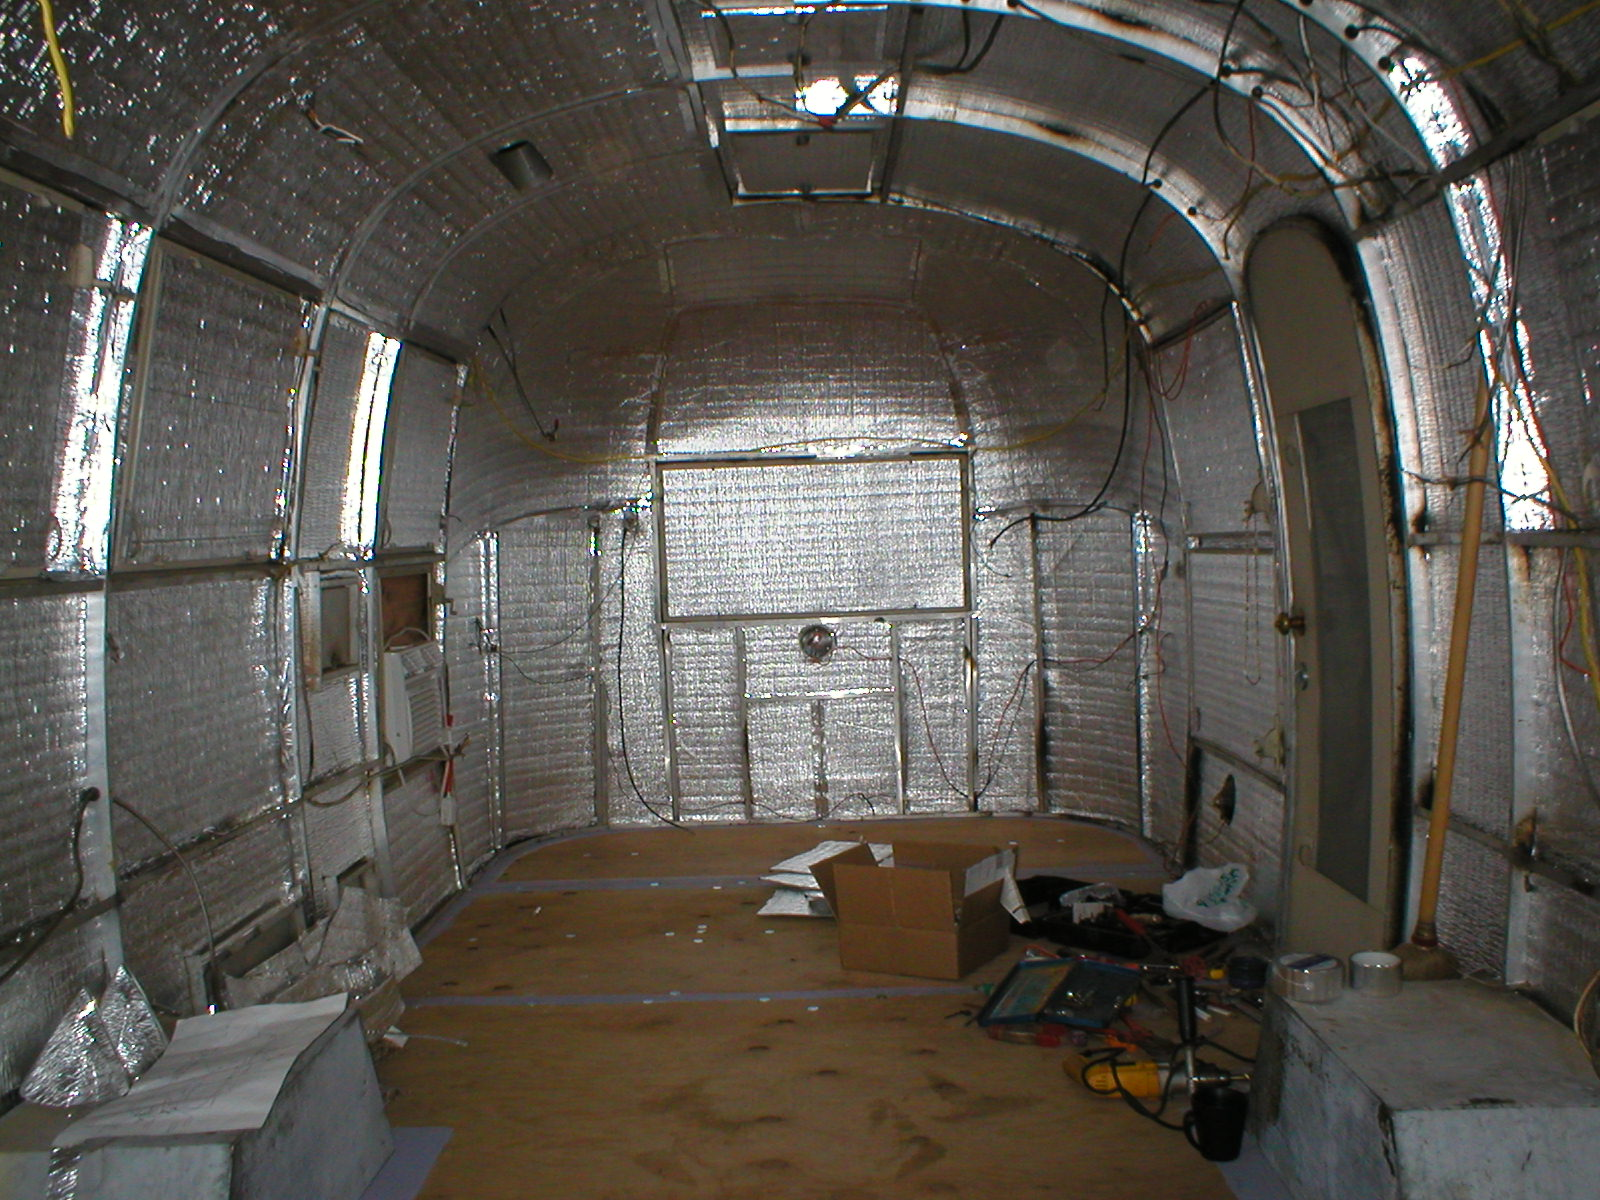 Click image for larger version  Name:Copy (2) of insulation.jpg Views:76 Size:407.2 KB ID:90013